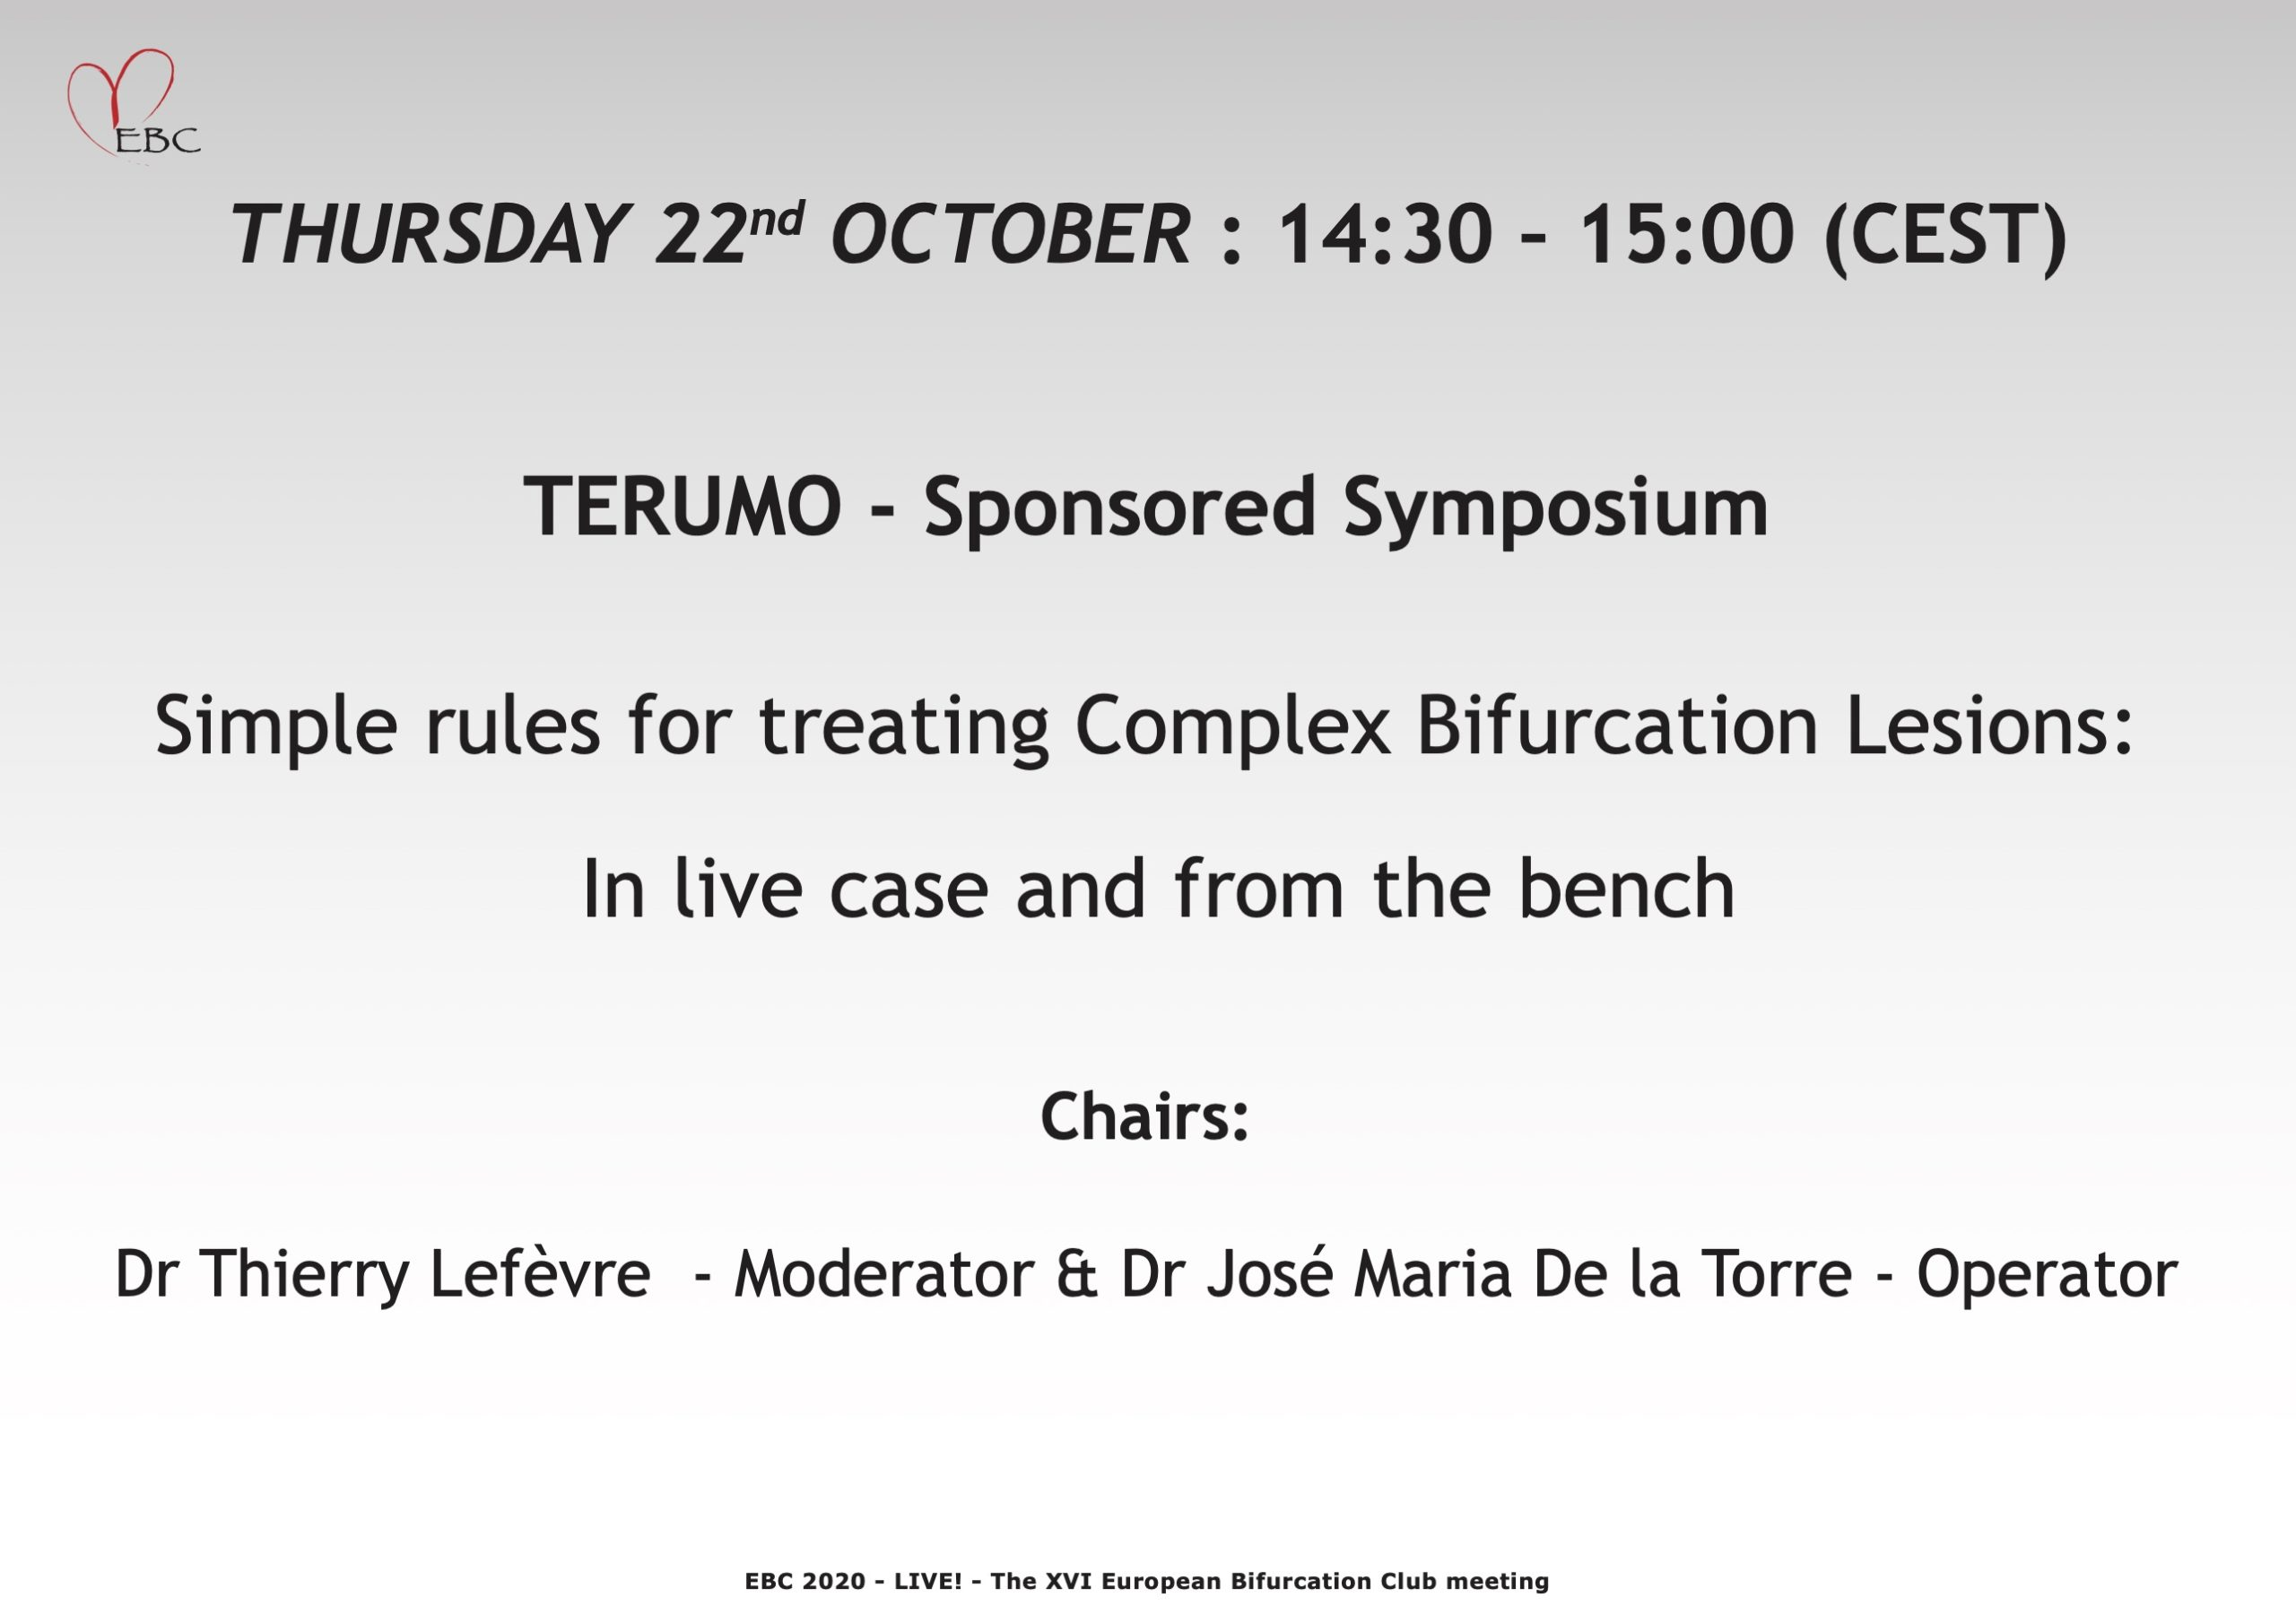 Simple rules for treating Complex Bifurcation Lesions: In live case and from the bench